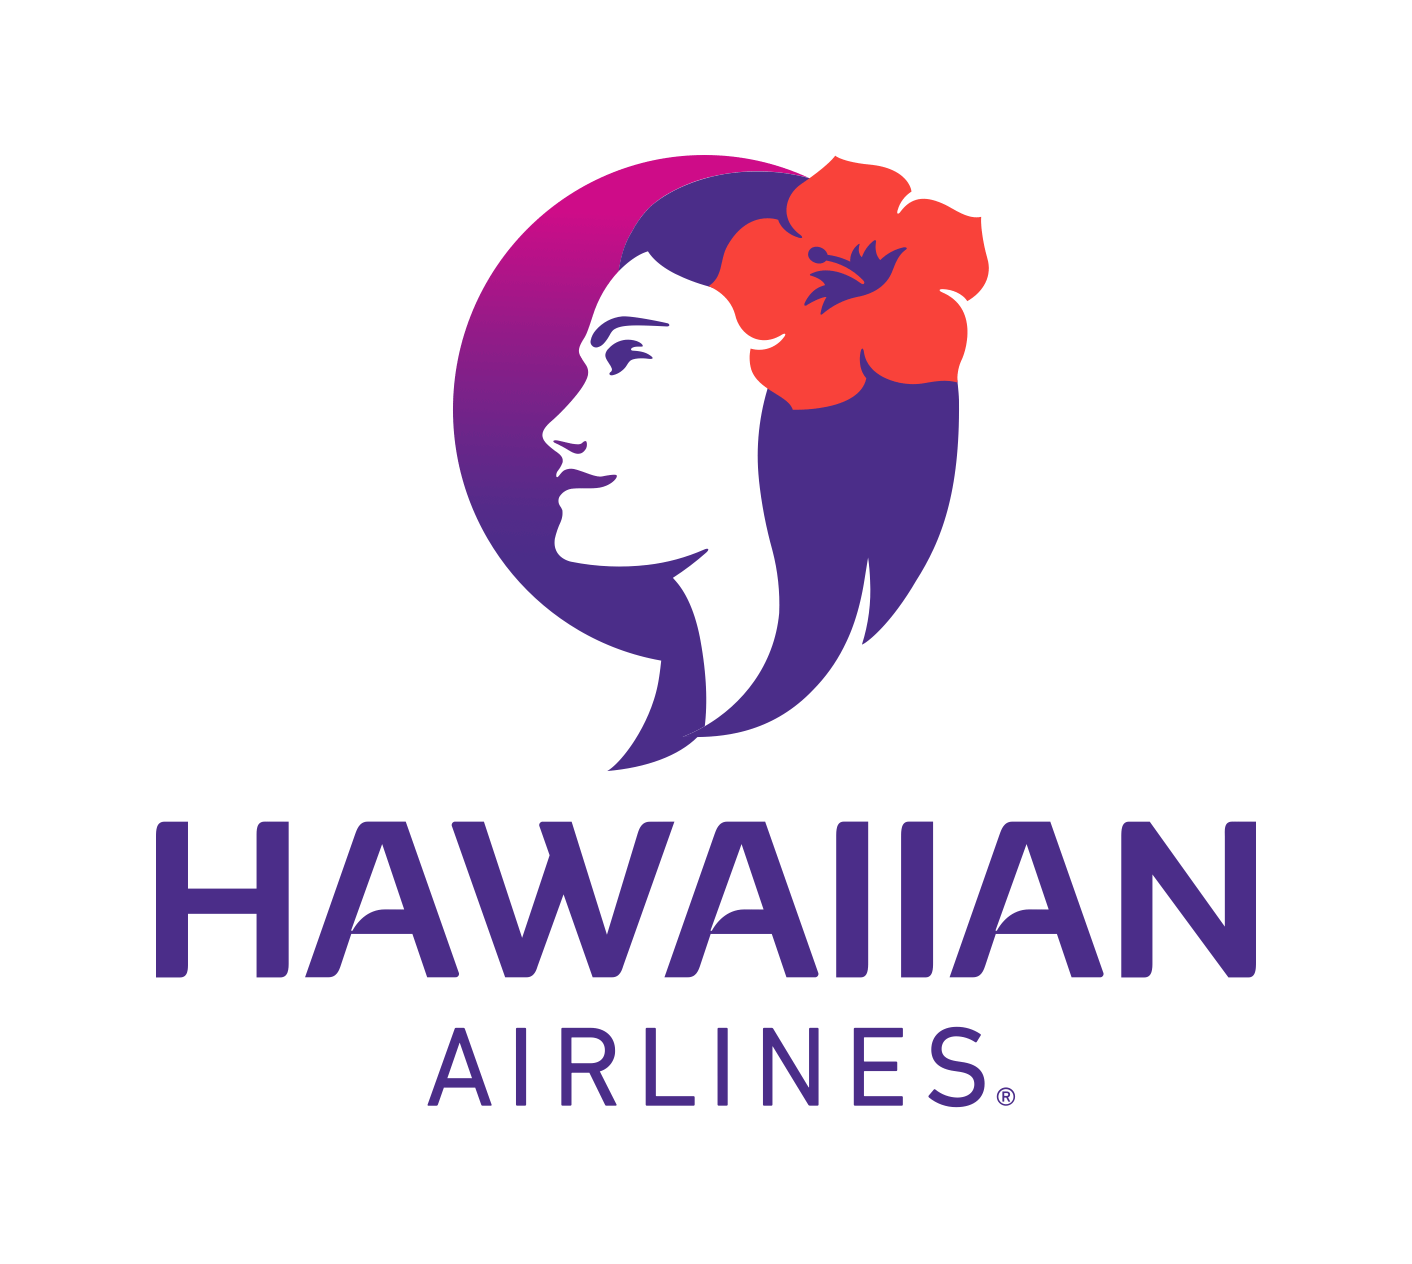 Hawaiian Airlines picture